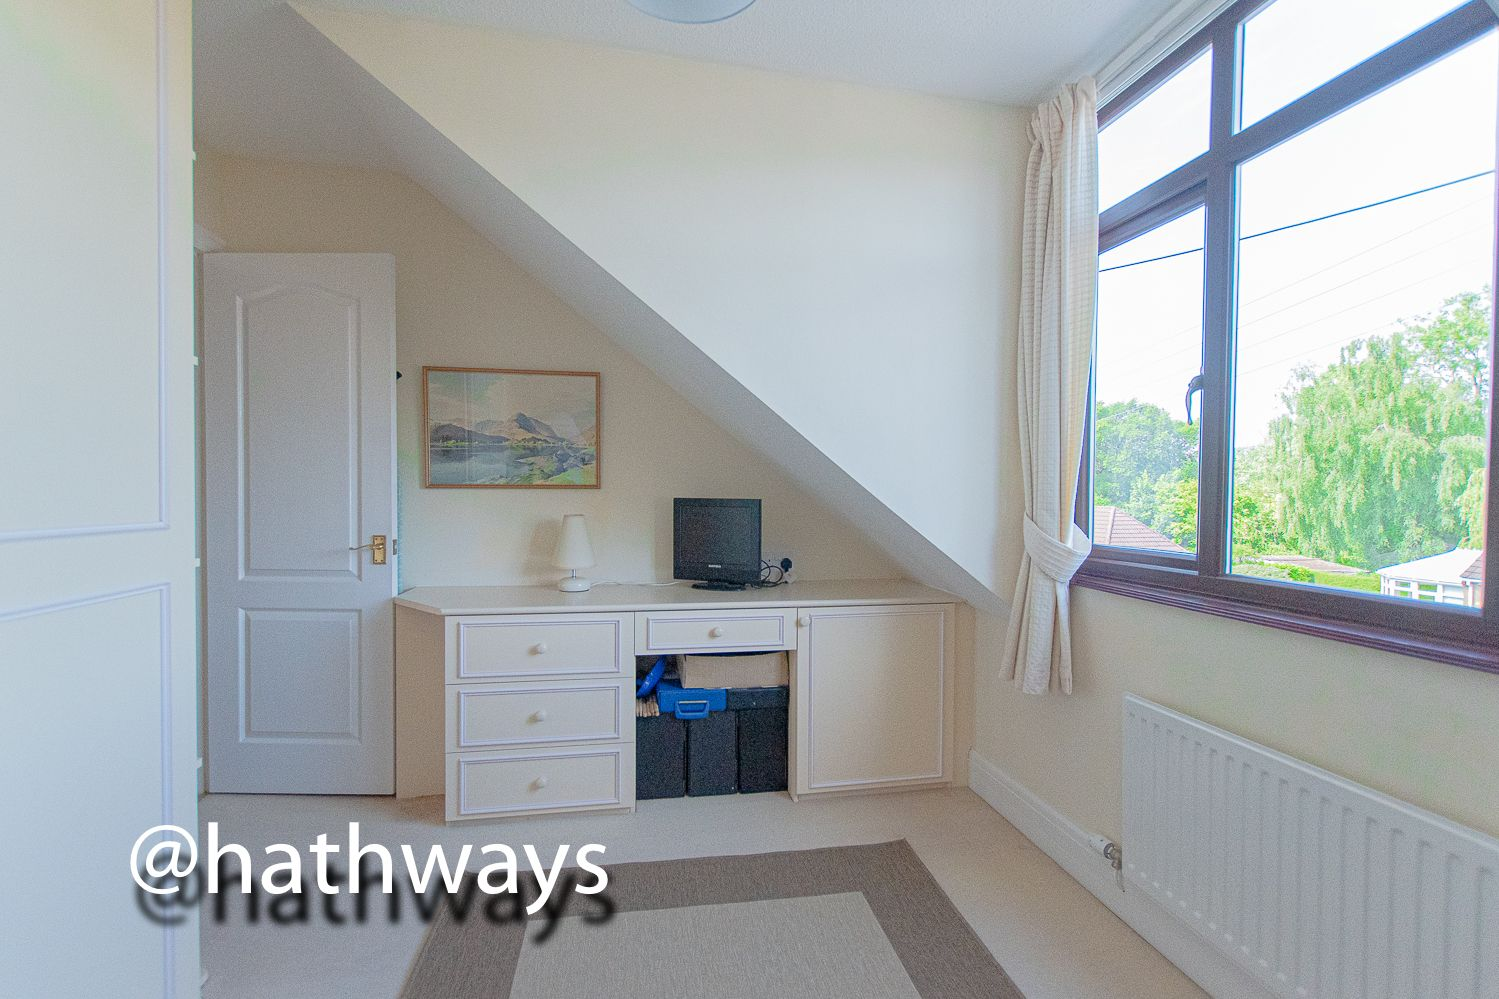 4 bed house for sale in Ashford Close South 42